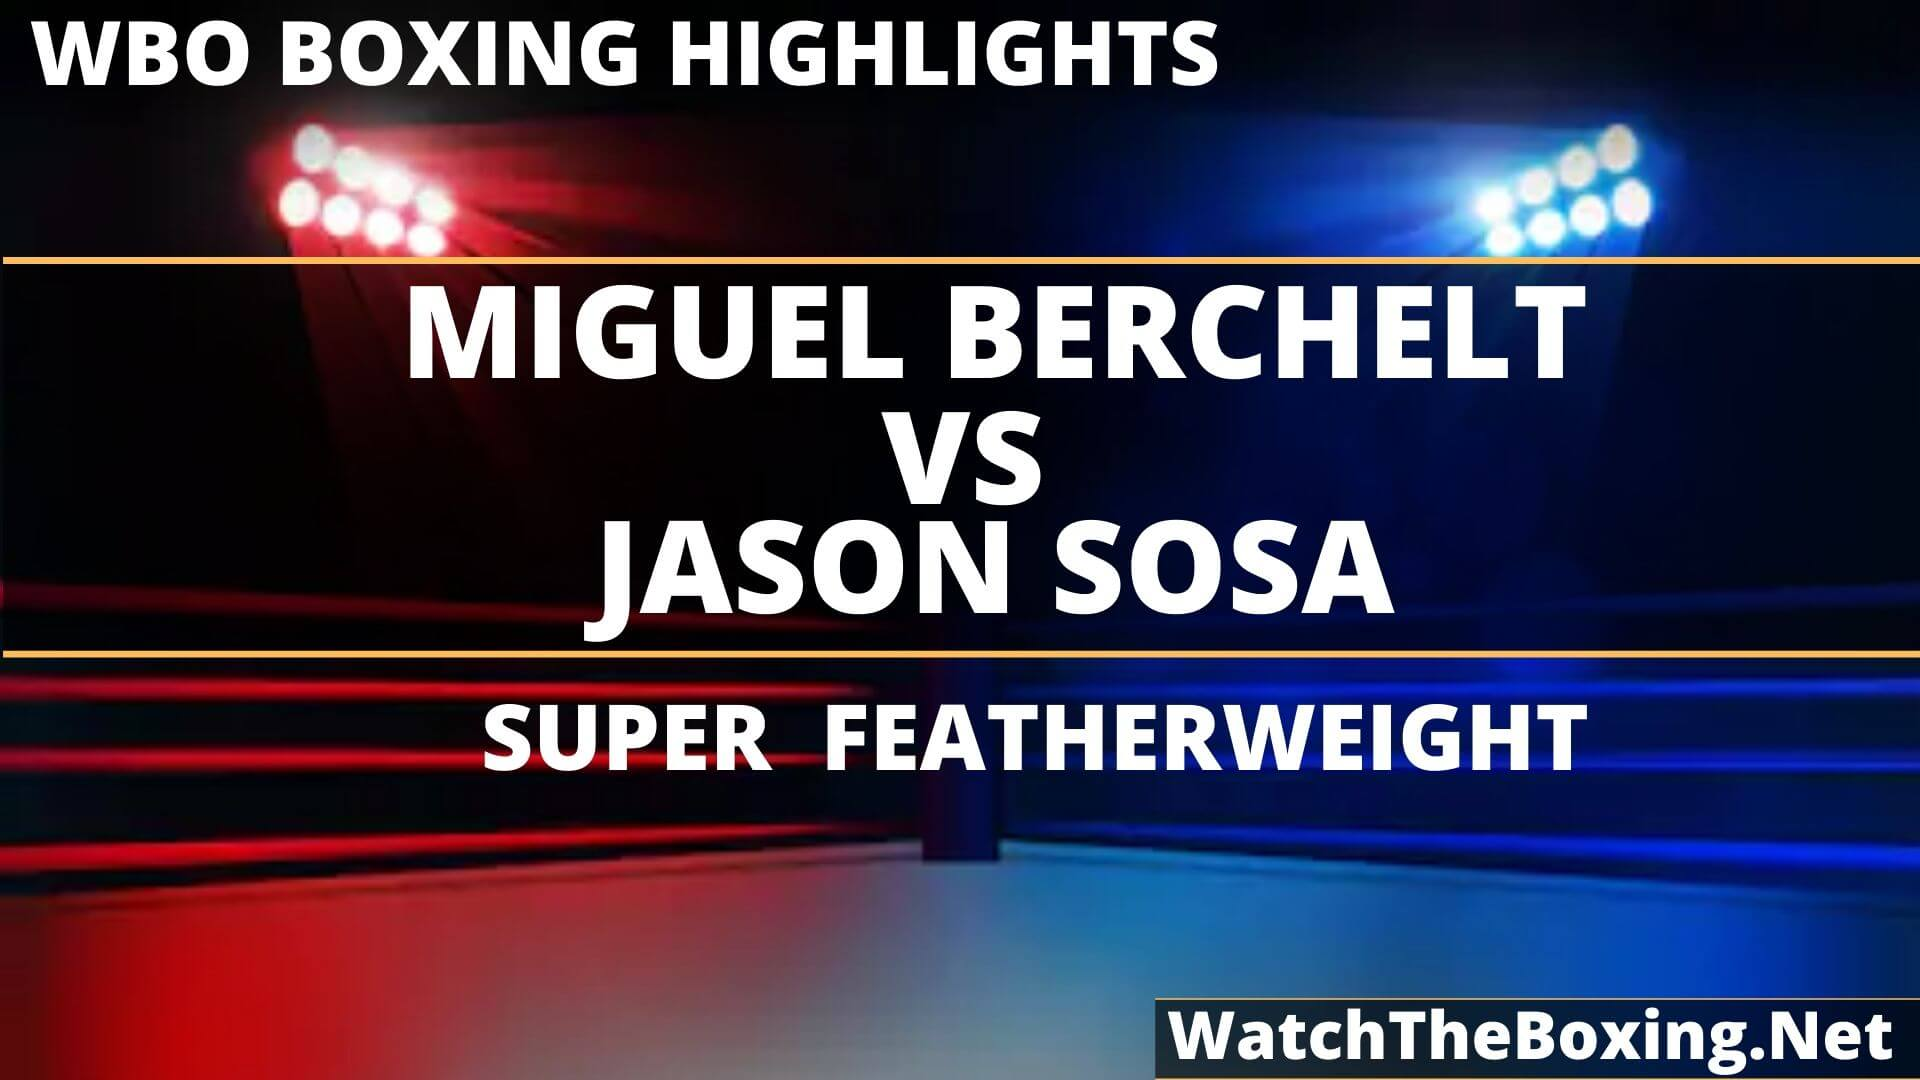 Miguel Berchelt Vs Jason Sosa Highlights 2019